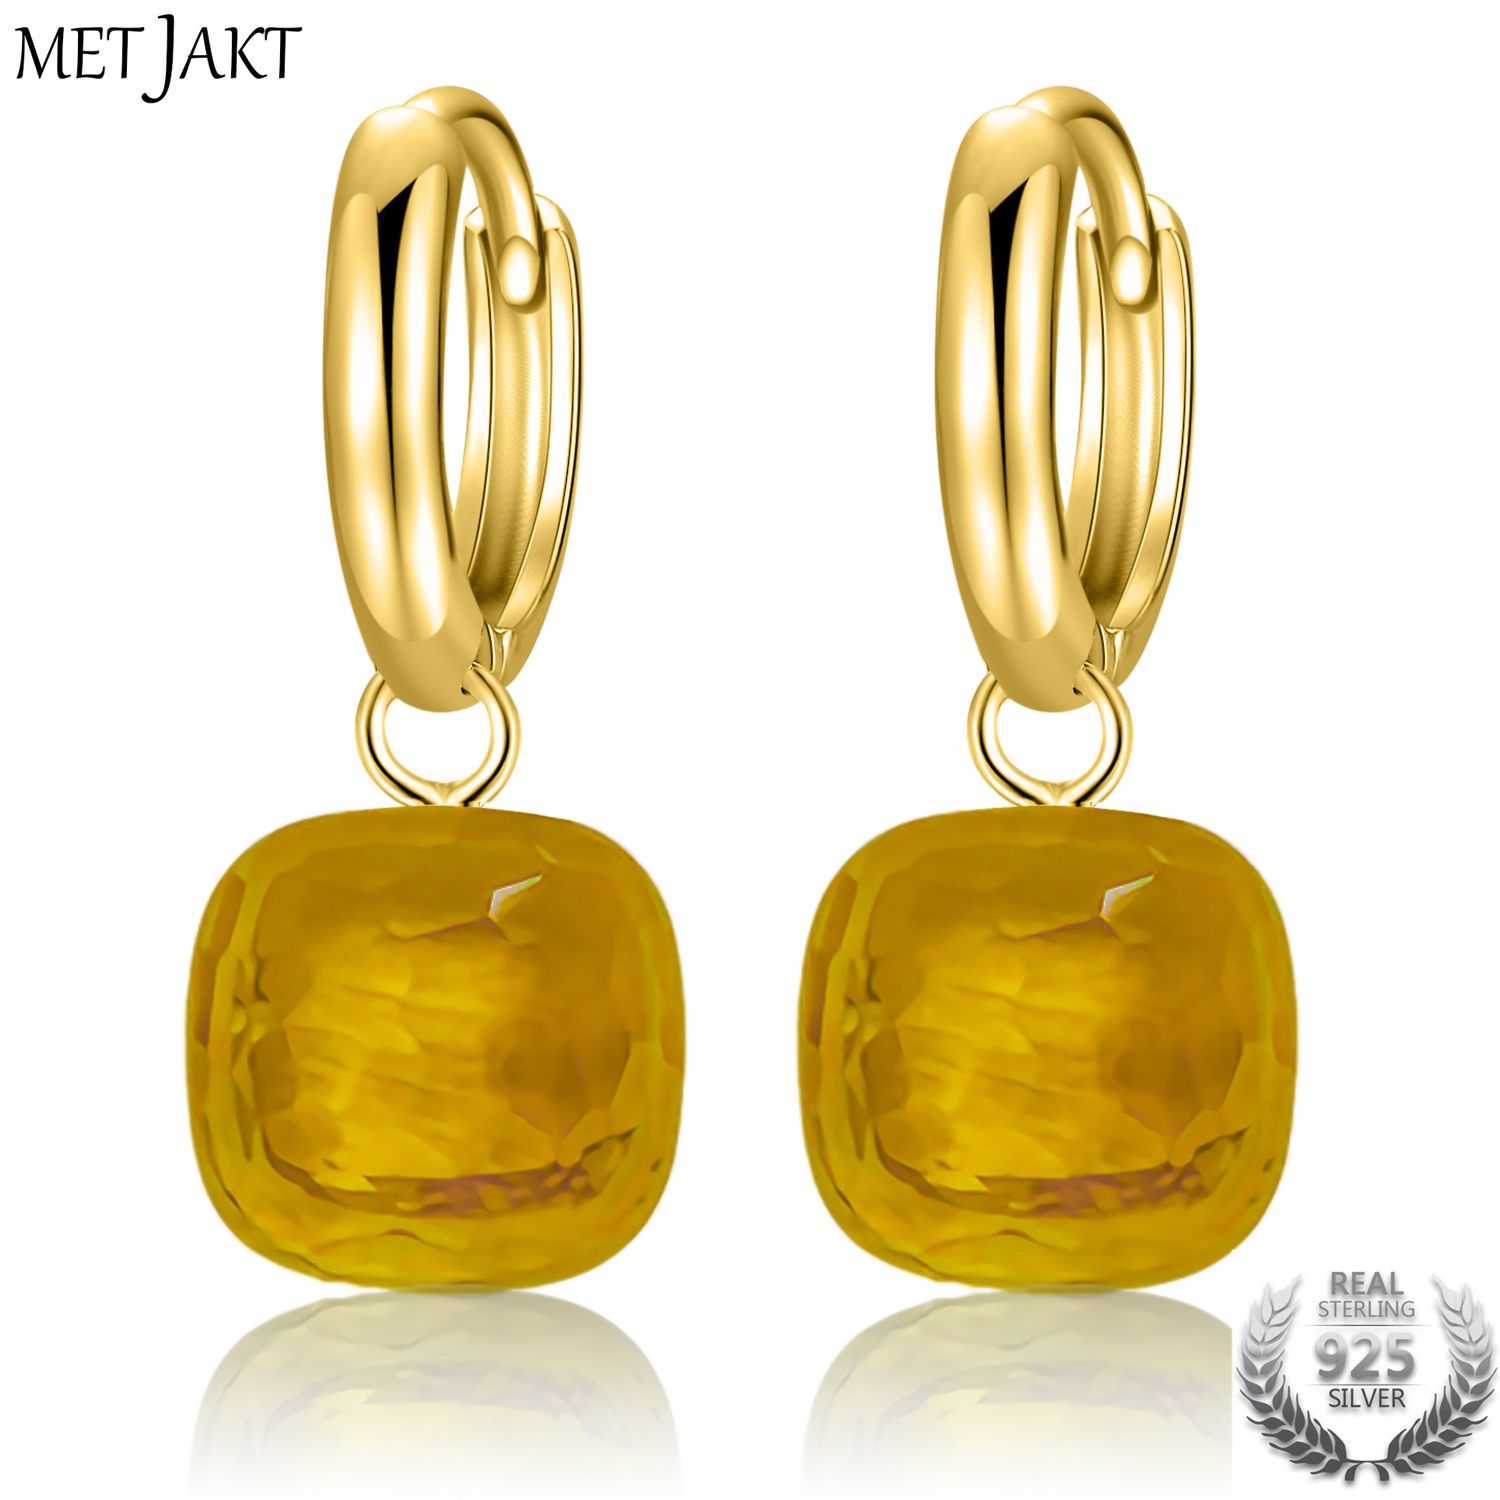 MetJakt Vintage Earring with Yellow Topaz Stone Solid 925 Sterling Silver Gold Color Earring for Lady